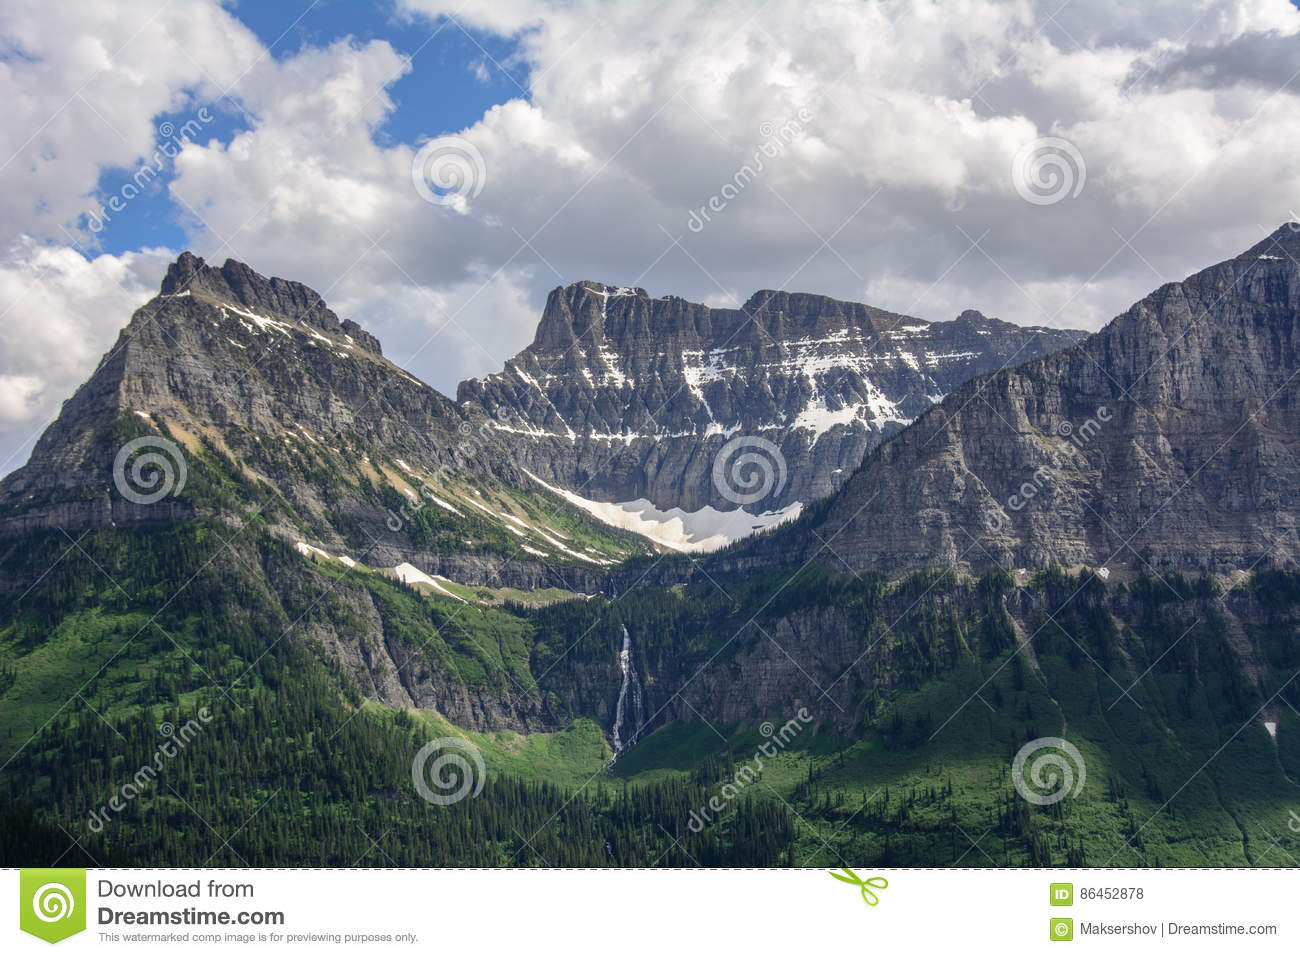 Rocky mountain in Glacier National Park, Montana USA. Oberlin Mountain and Cannon Mountain